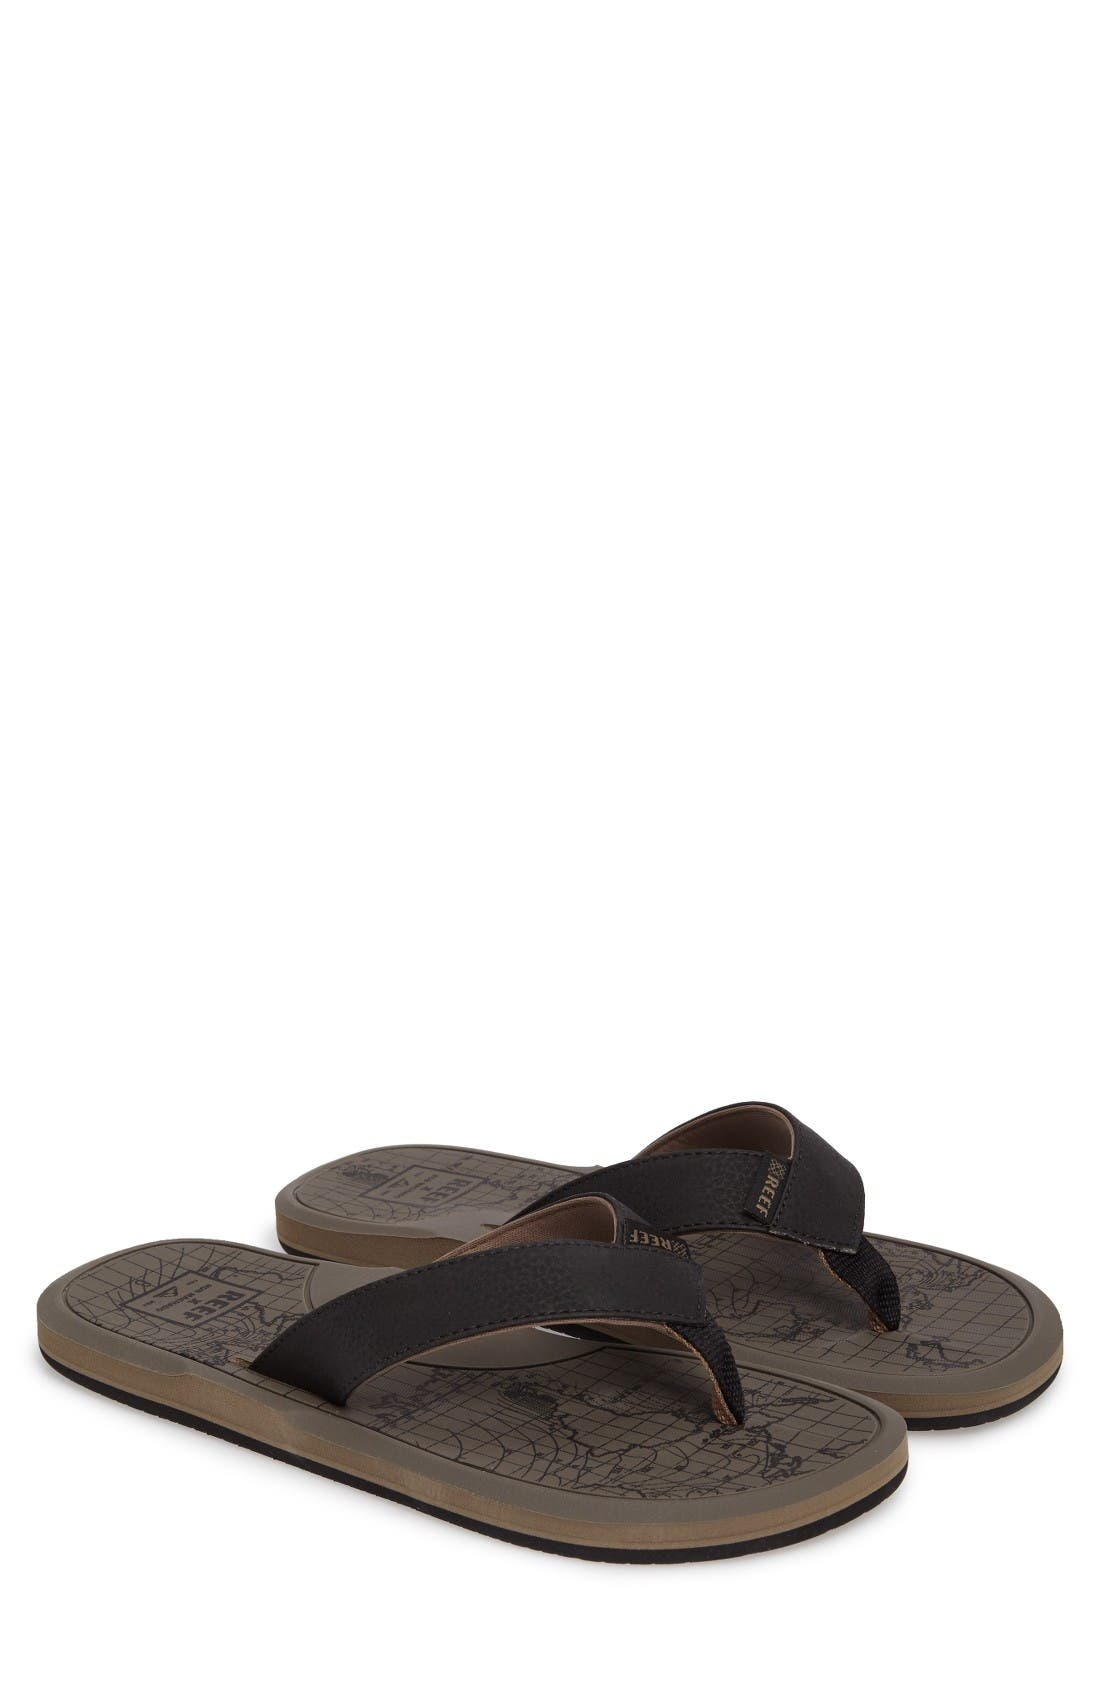 Reef Machado Flip Flop (Men)